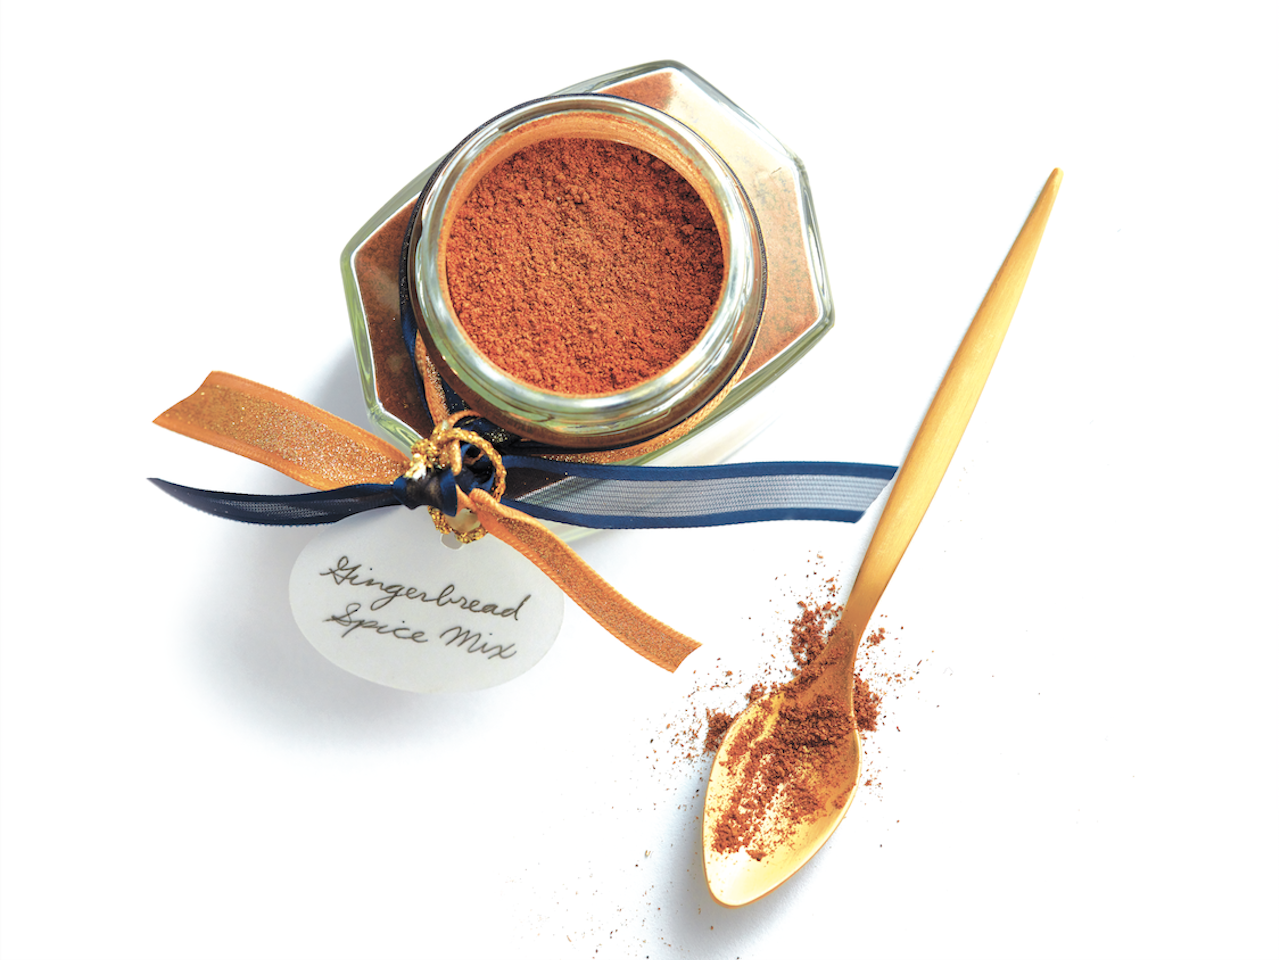 Gingerbread spice mix in a jar